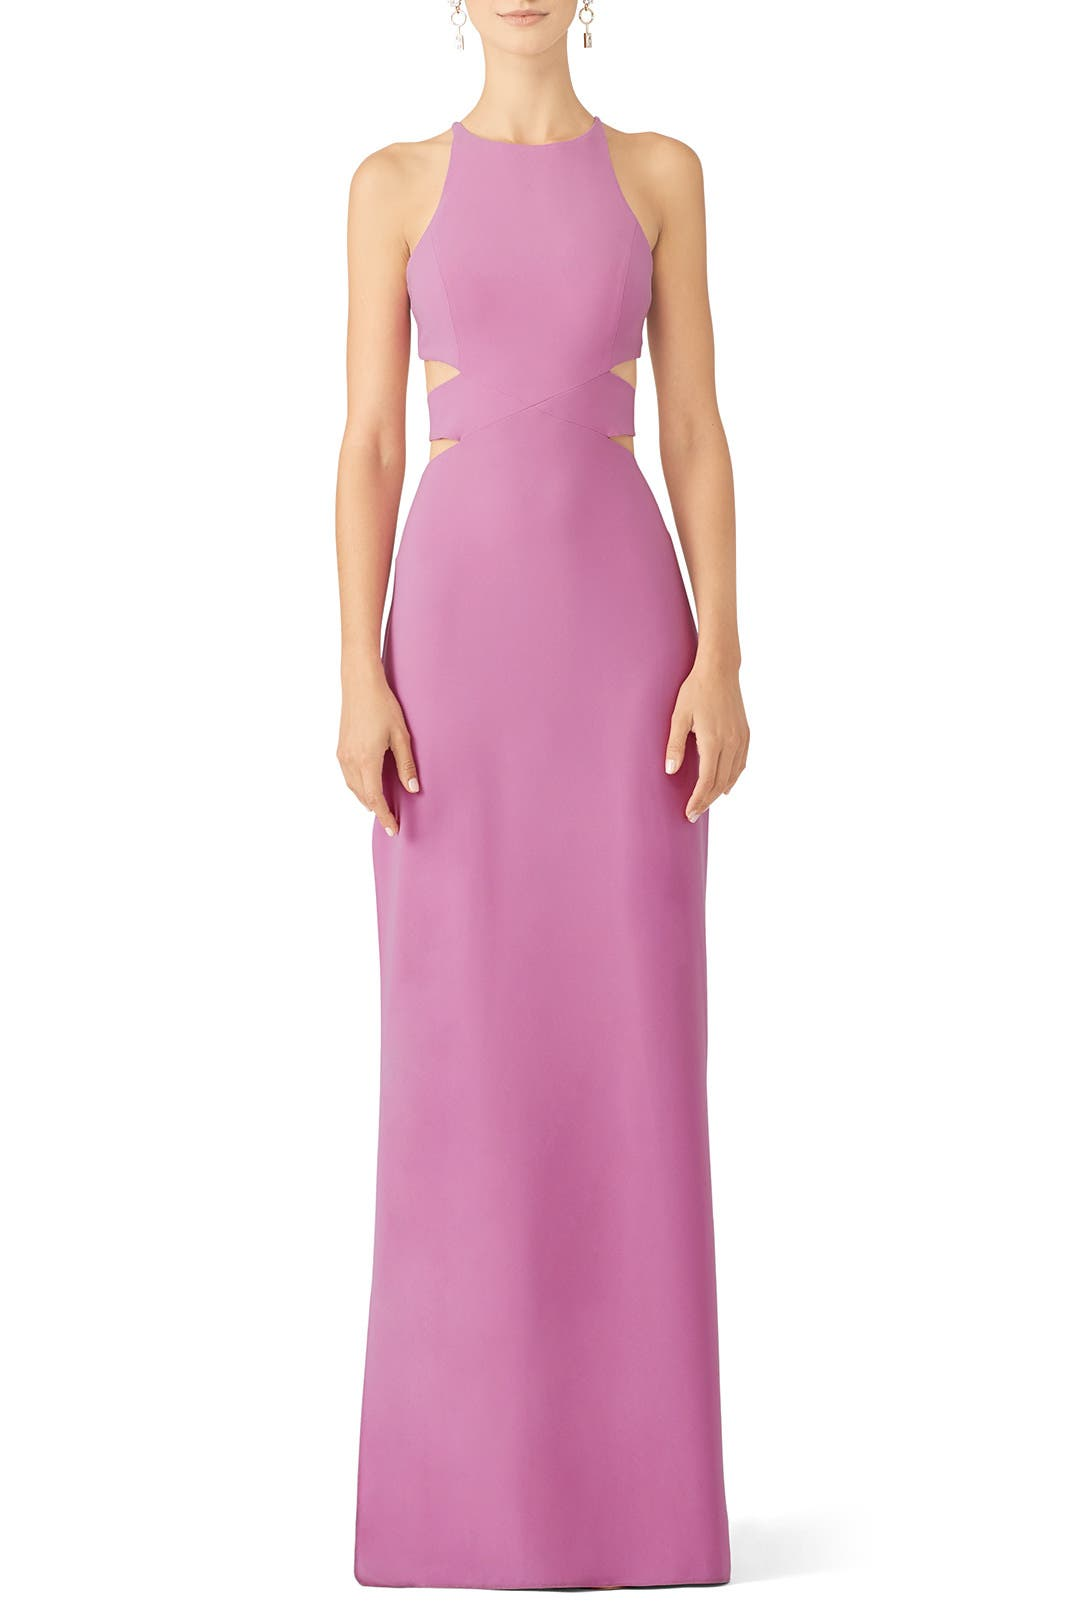 97aa536fac5 Pink Cut Out Gown by Halston Heritage for  70 -  108